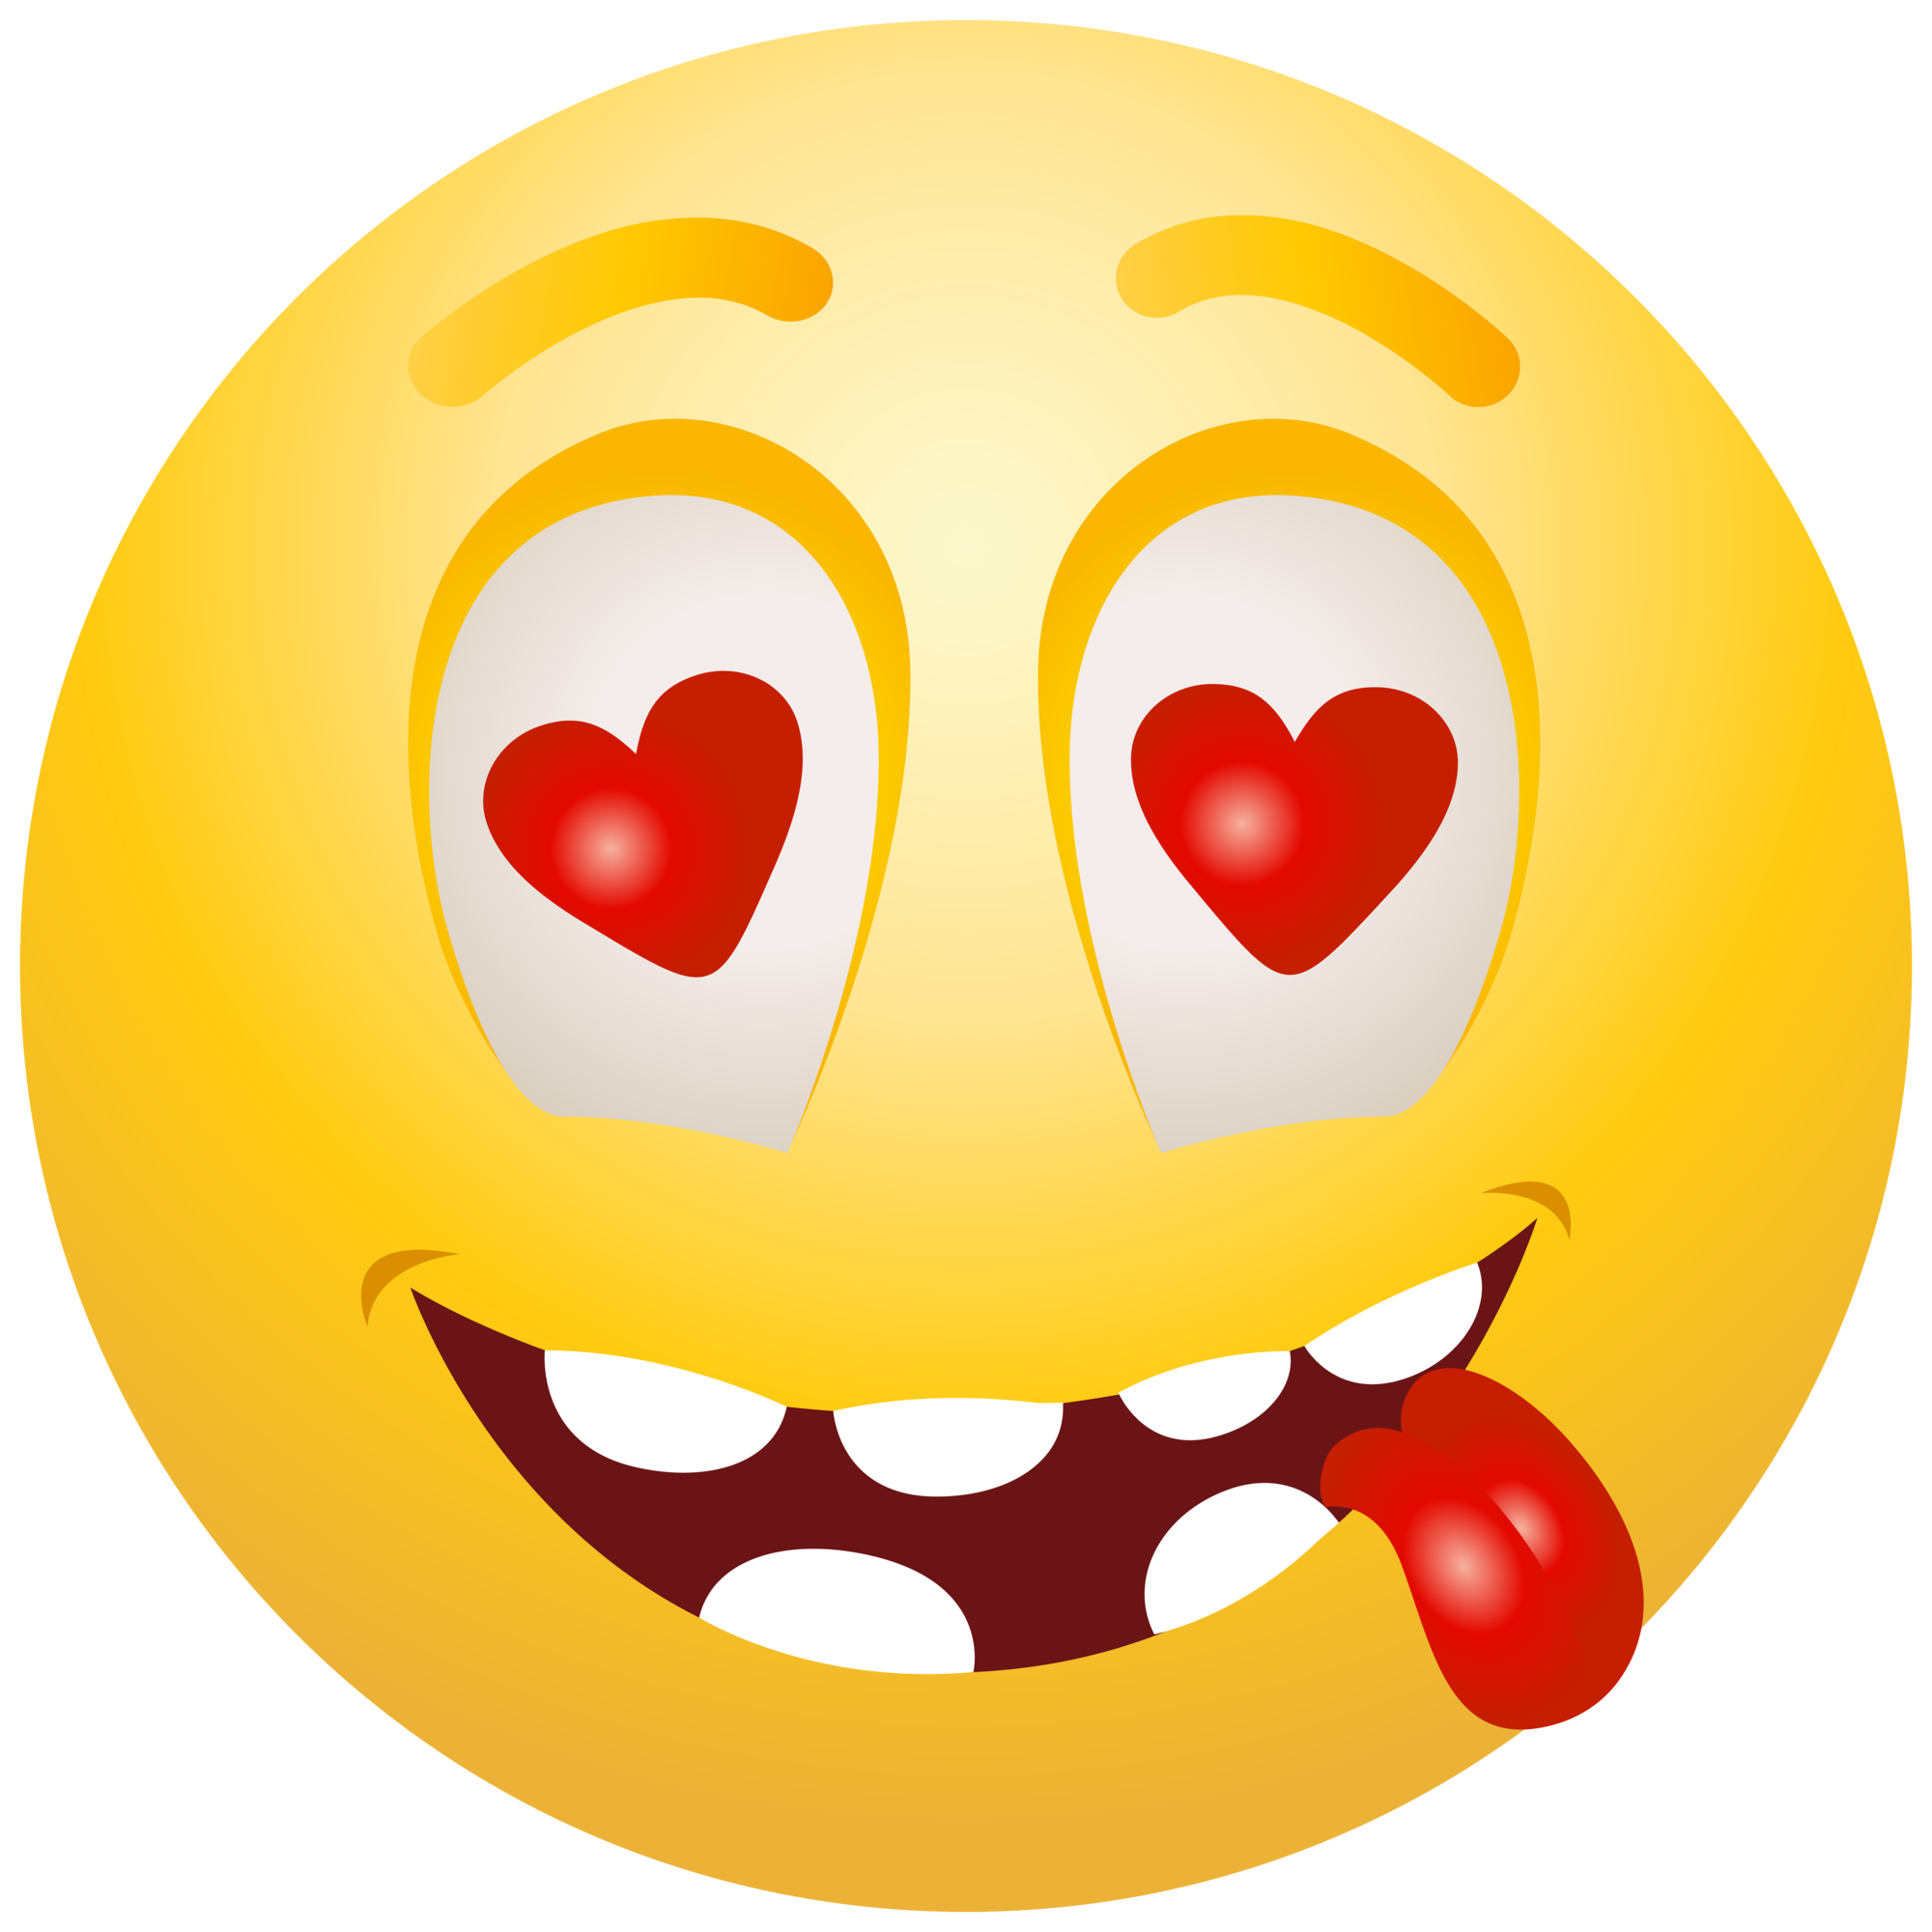 In Love emoticon emoji Clipart info